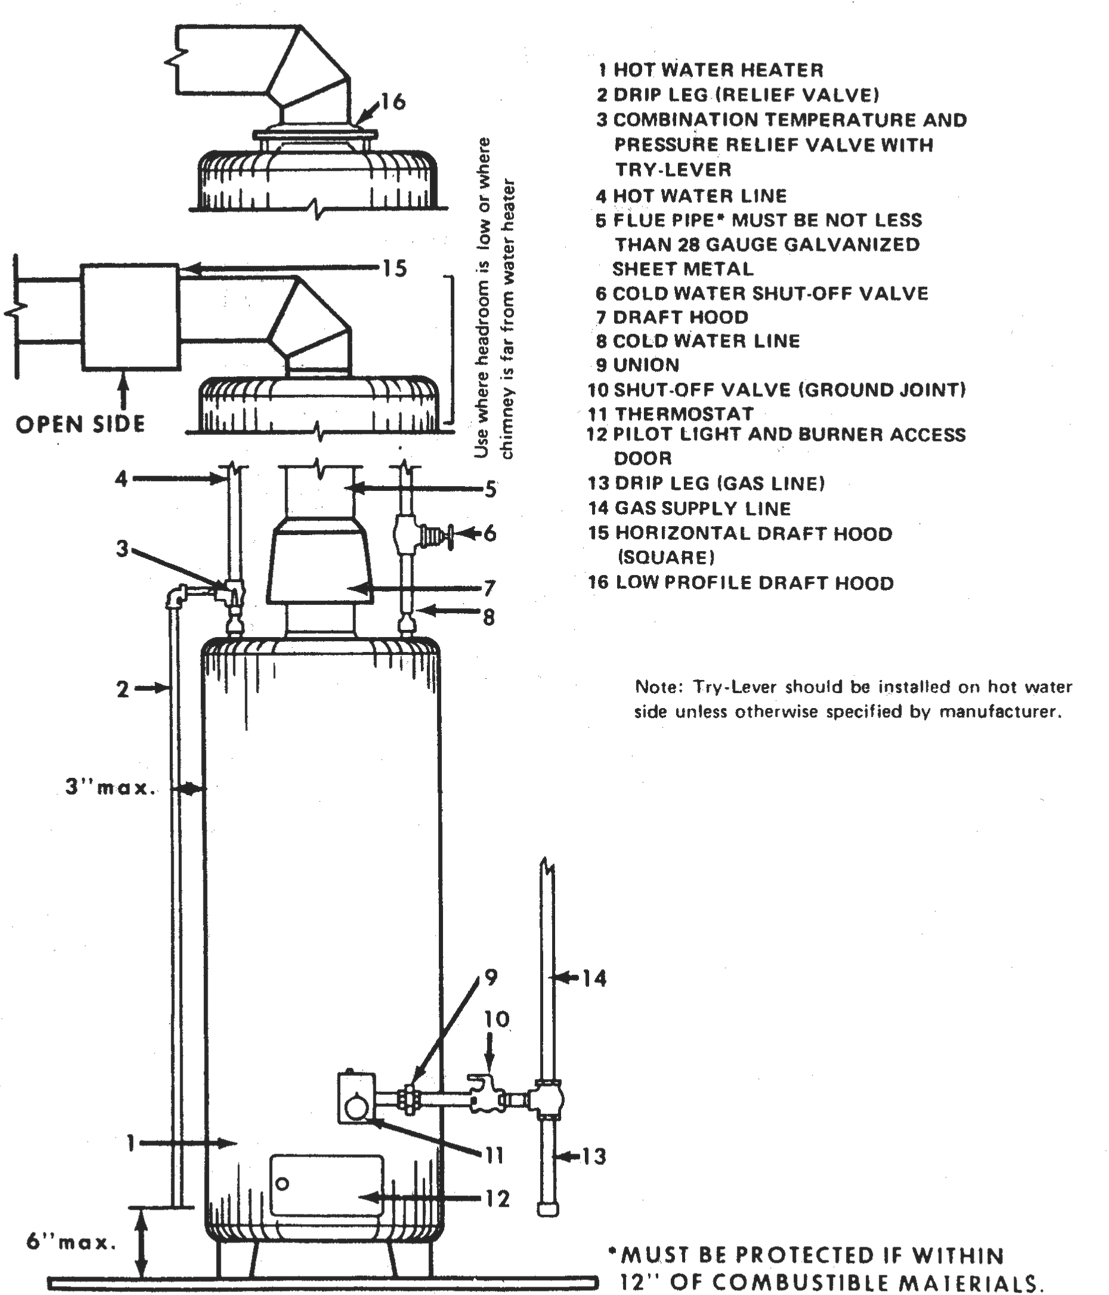 Figure 9.3. Gas Water Heater